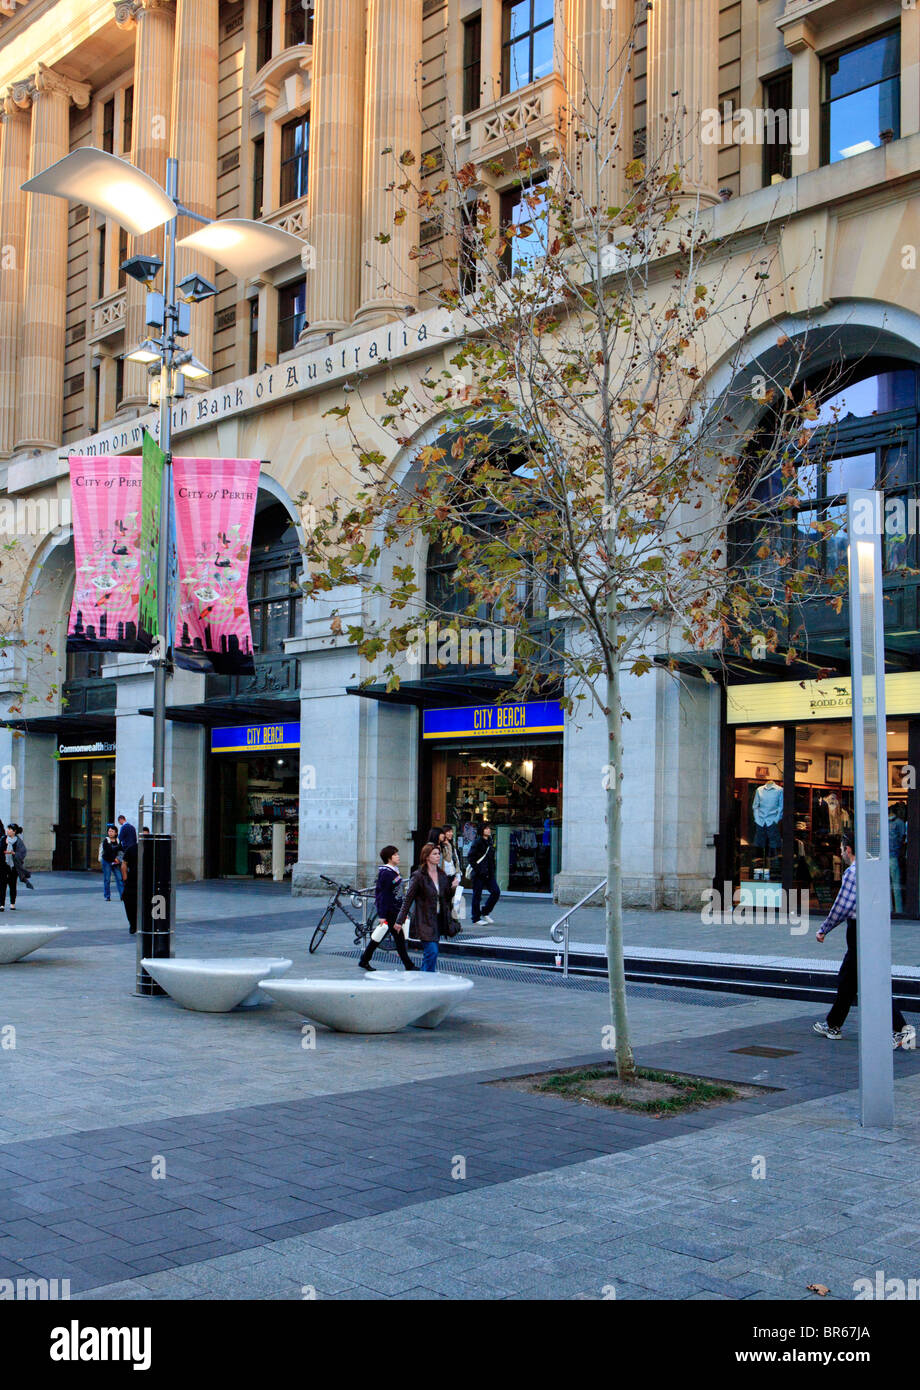 Murray Street Mall pedestrianised shopping precinct in Perth city centre. - Stock Image